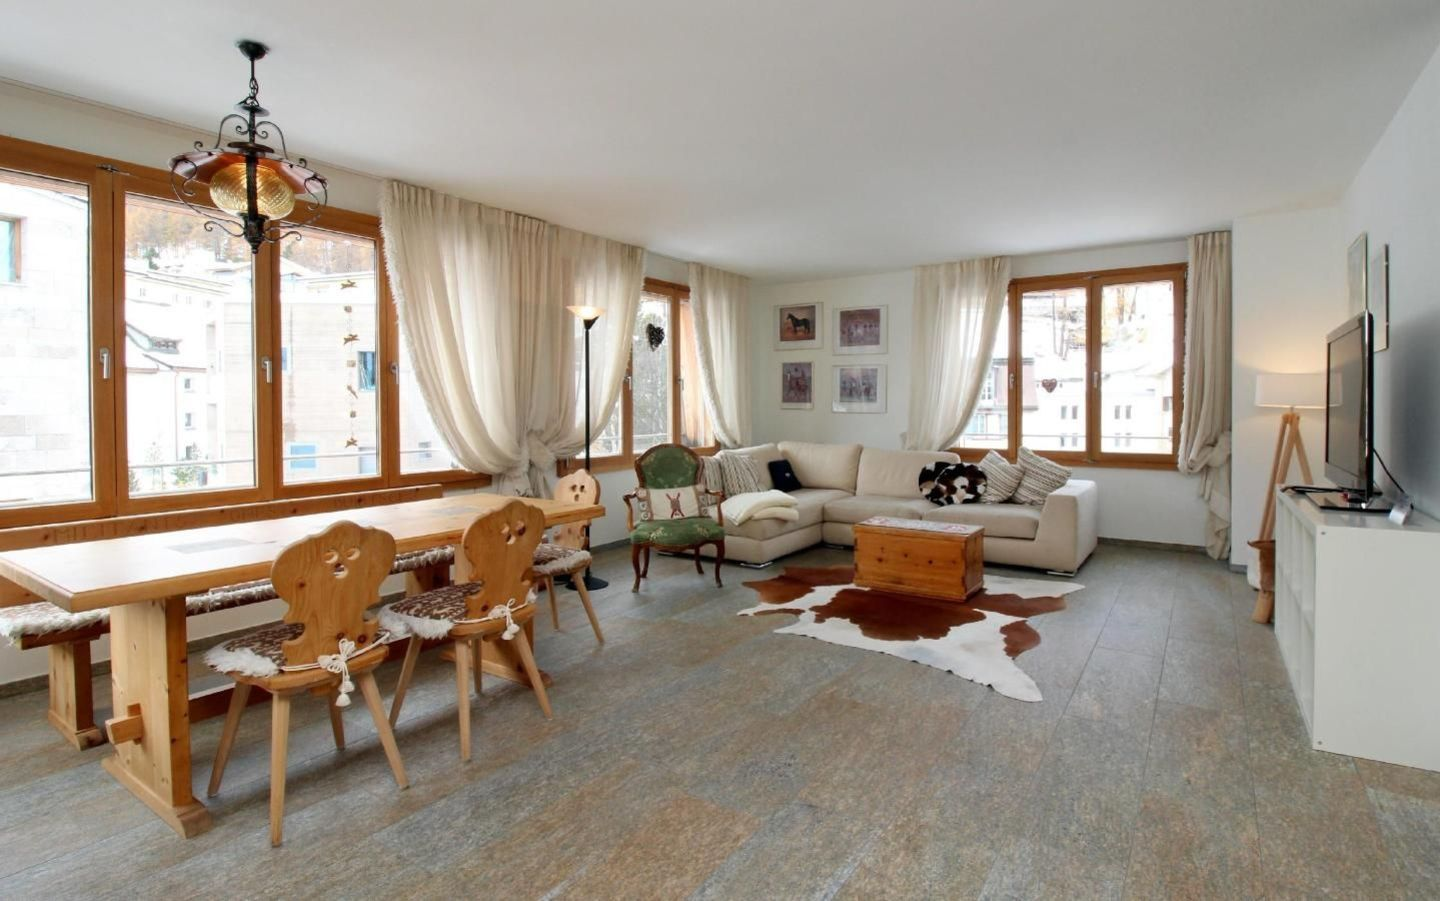 Amazing Apartment in St Moritz for rent